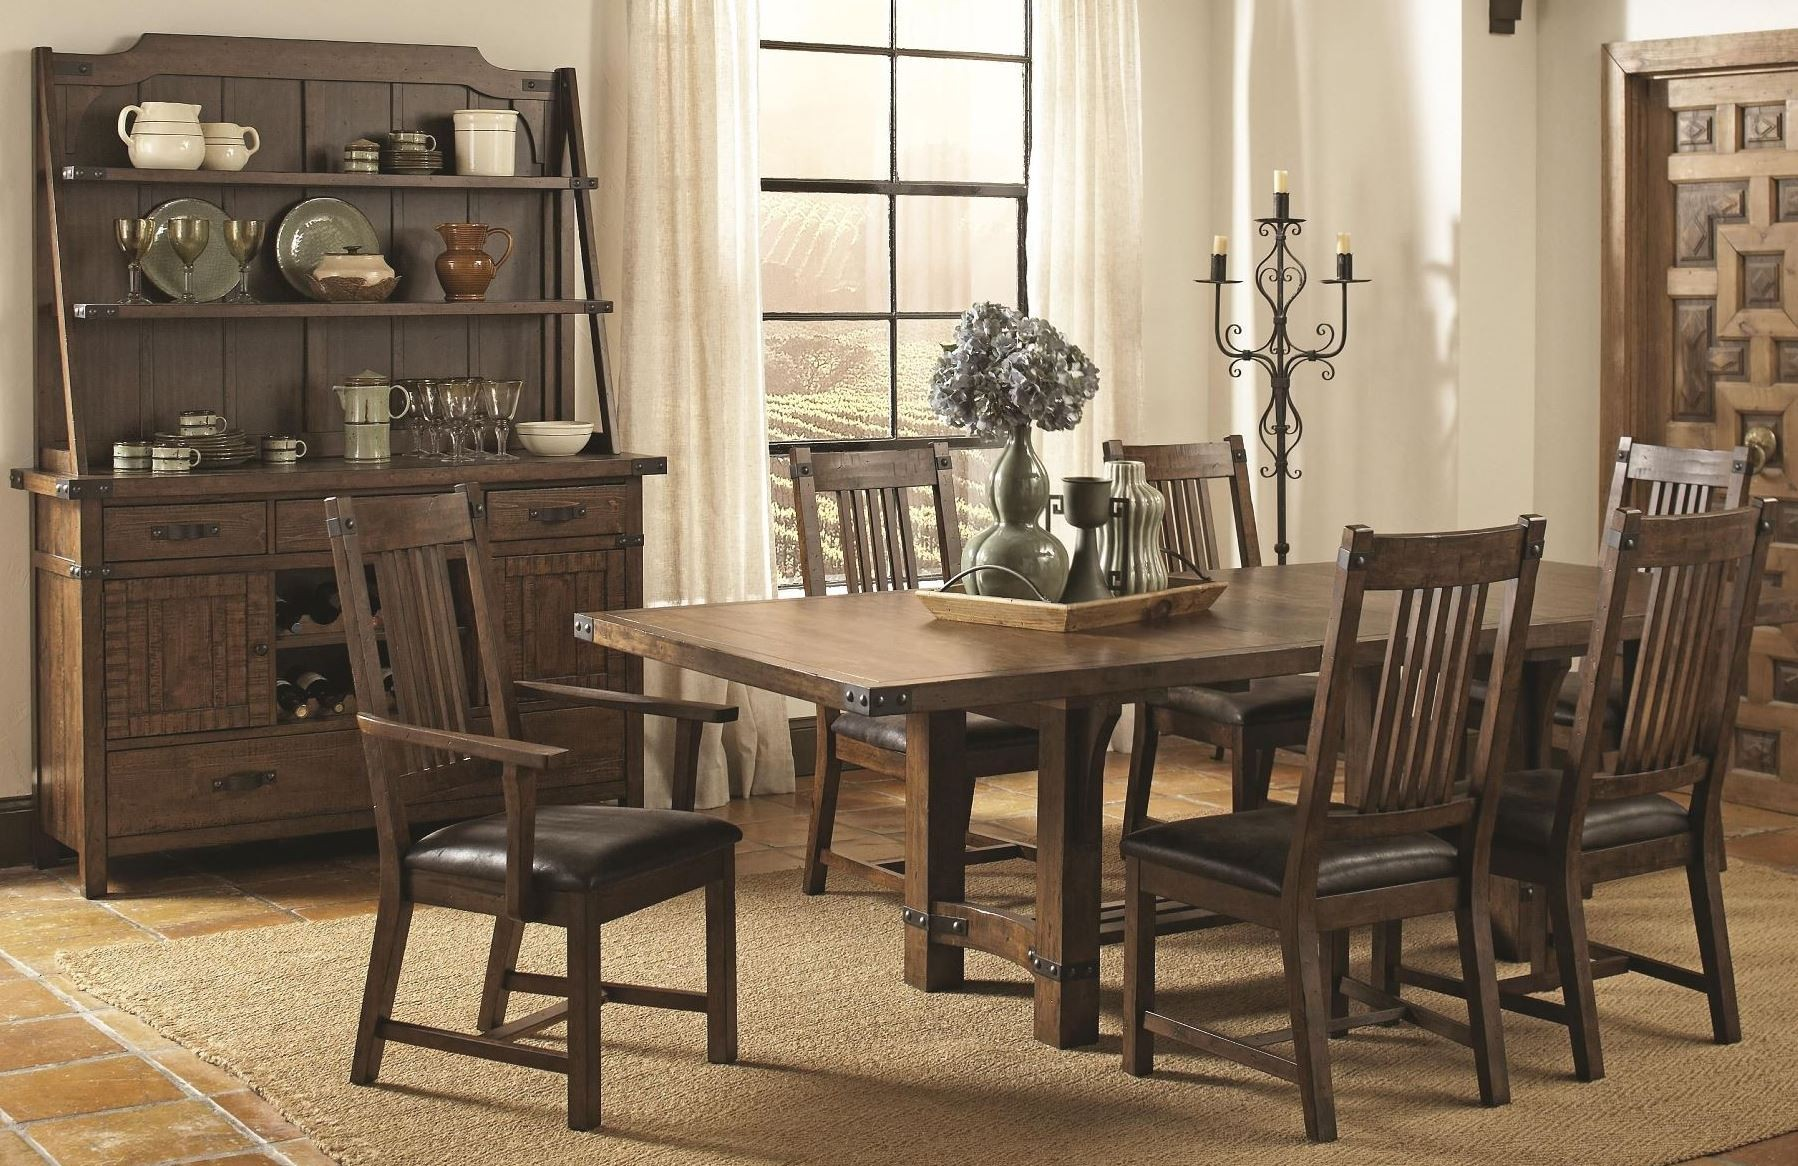 Padima Rustic Rough Sawn Rectangular Extendable Dining Room Set From Coaster 105701 Coleman